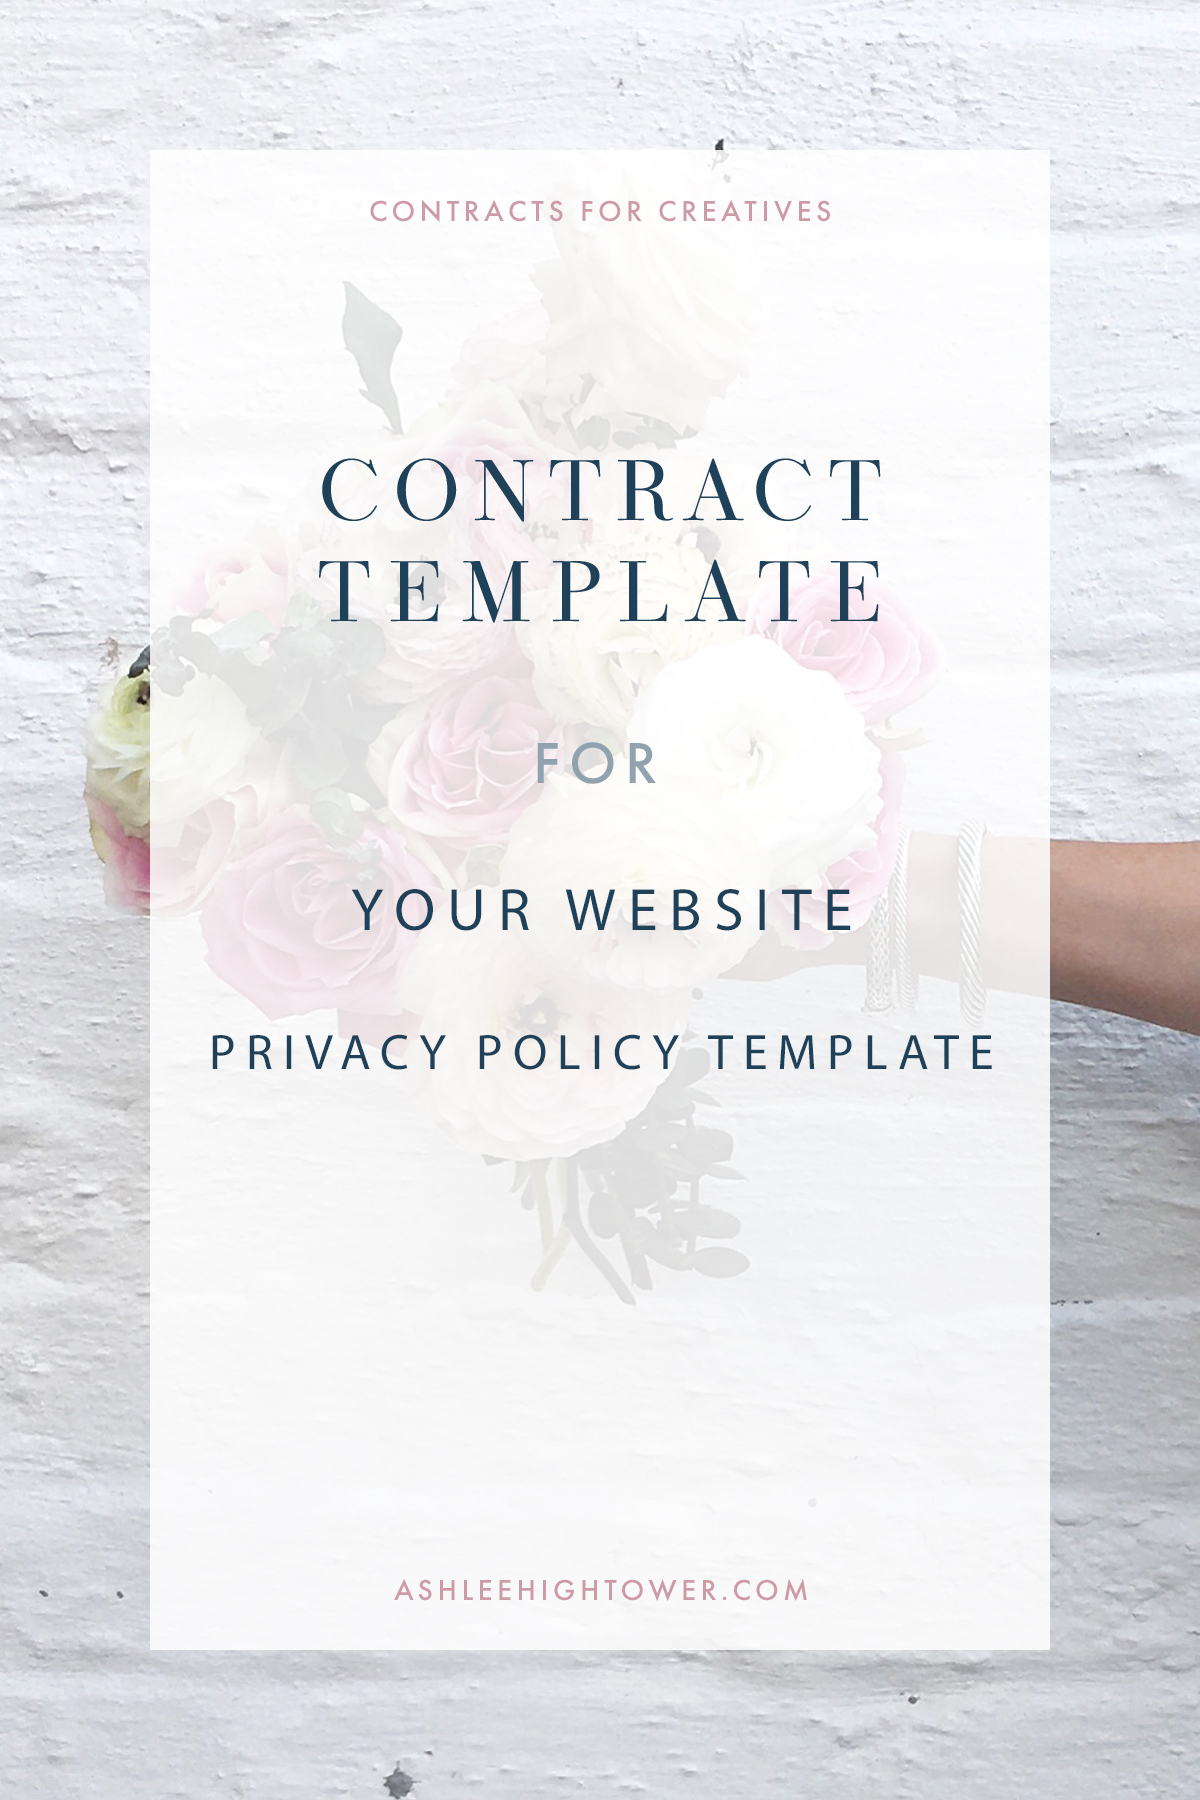 Privacy Policy for Website | Contracts for Creatives